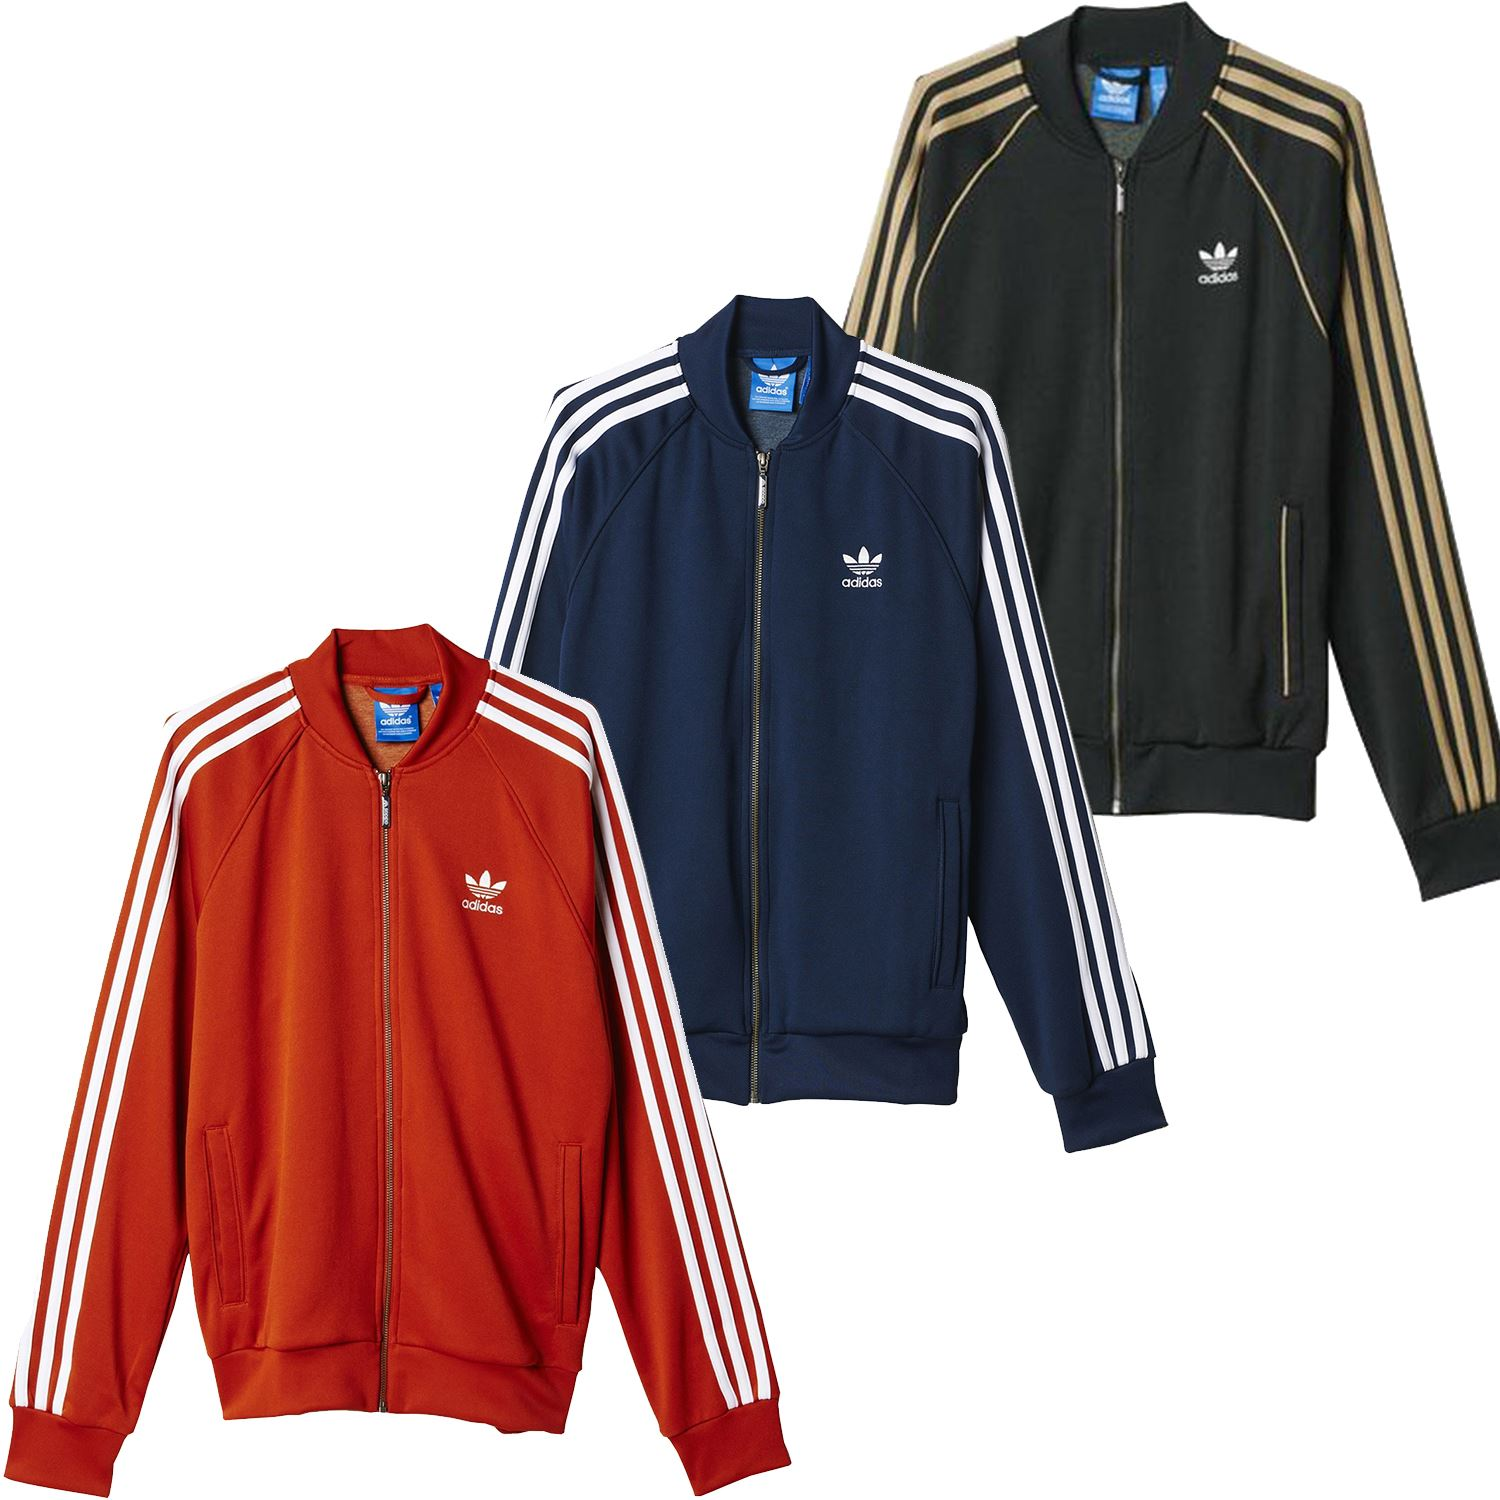 best loved b68bc 04dfd Details about adidas ORIGINALS SUPERSTAR TRACK TOP GREEN RED NAVY RETRO RUN  DMC CASUALS MEN S